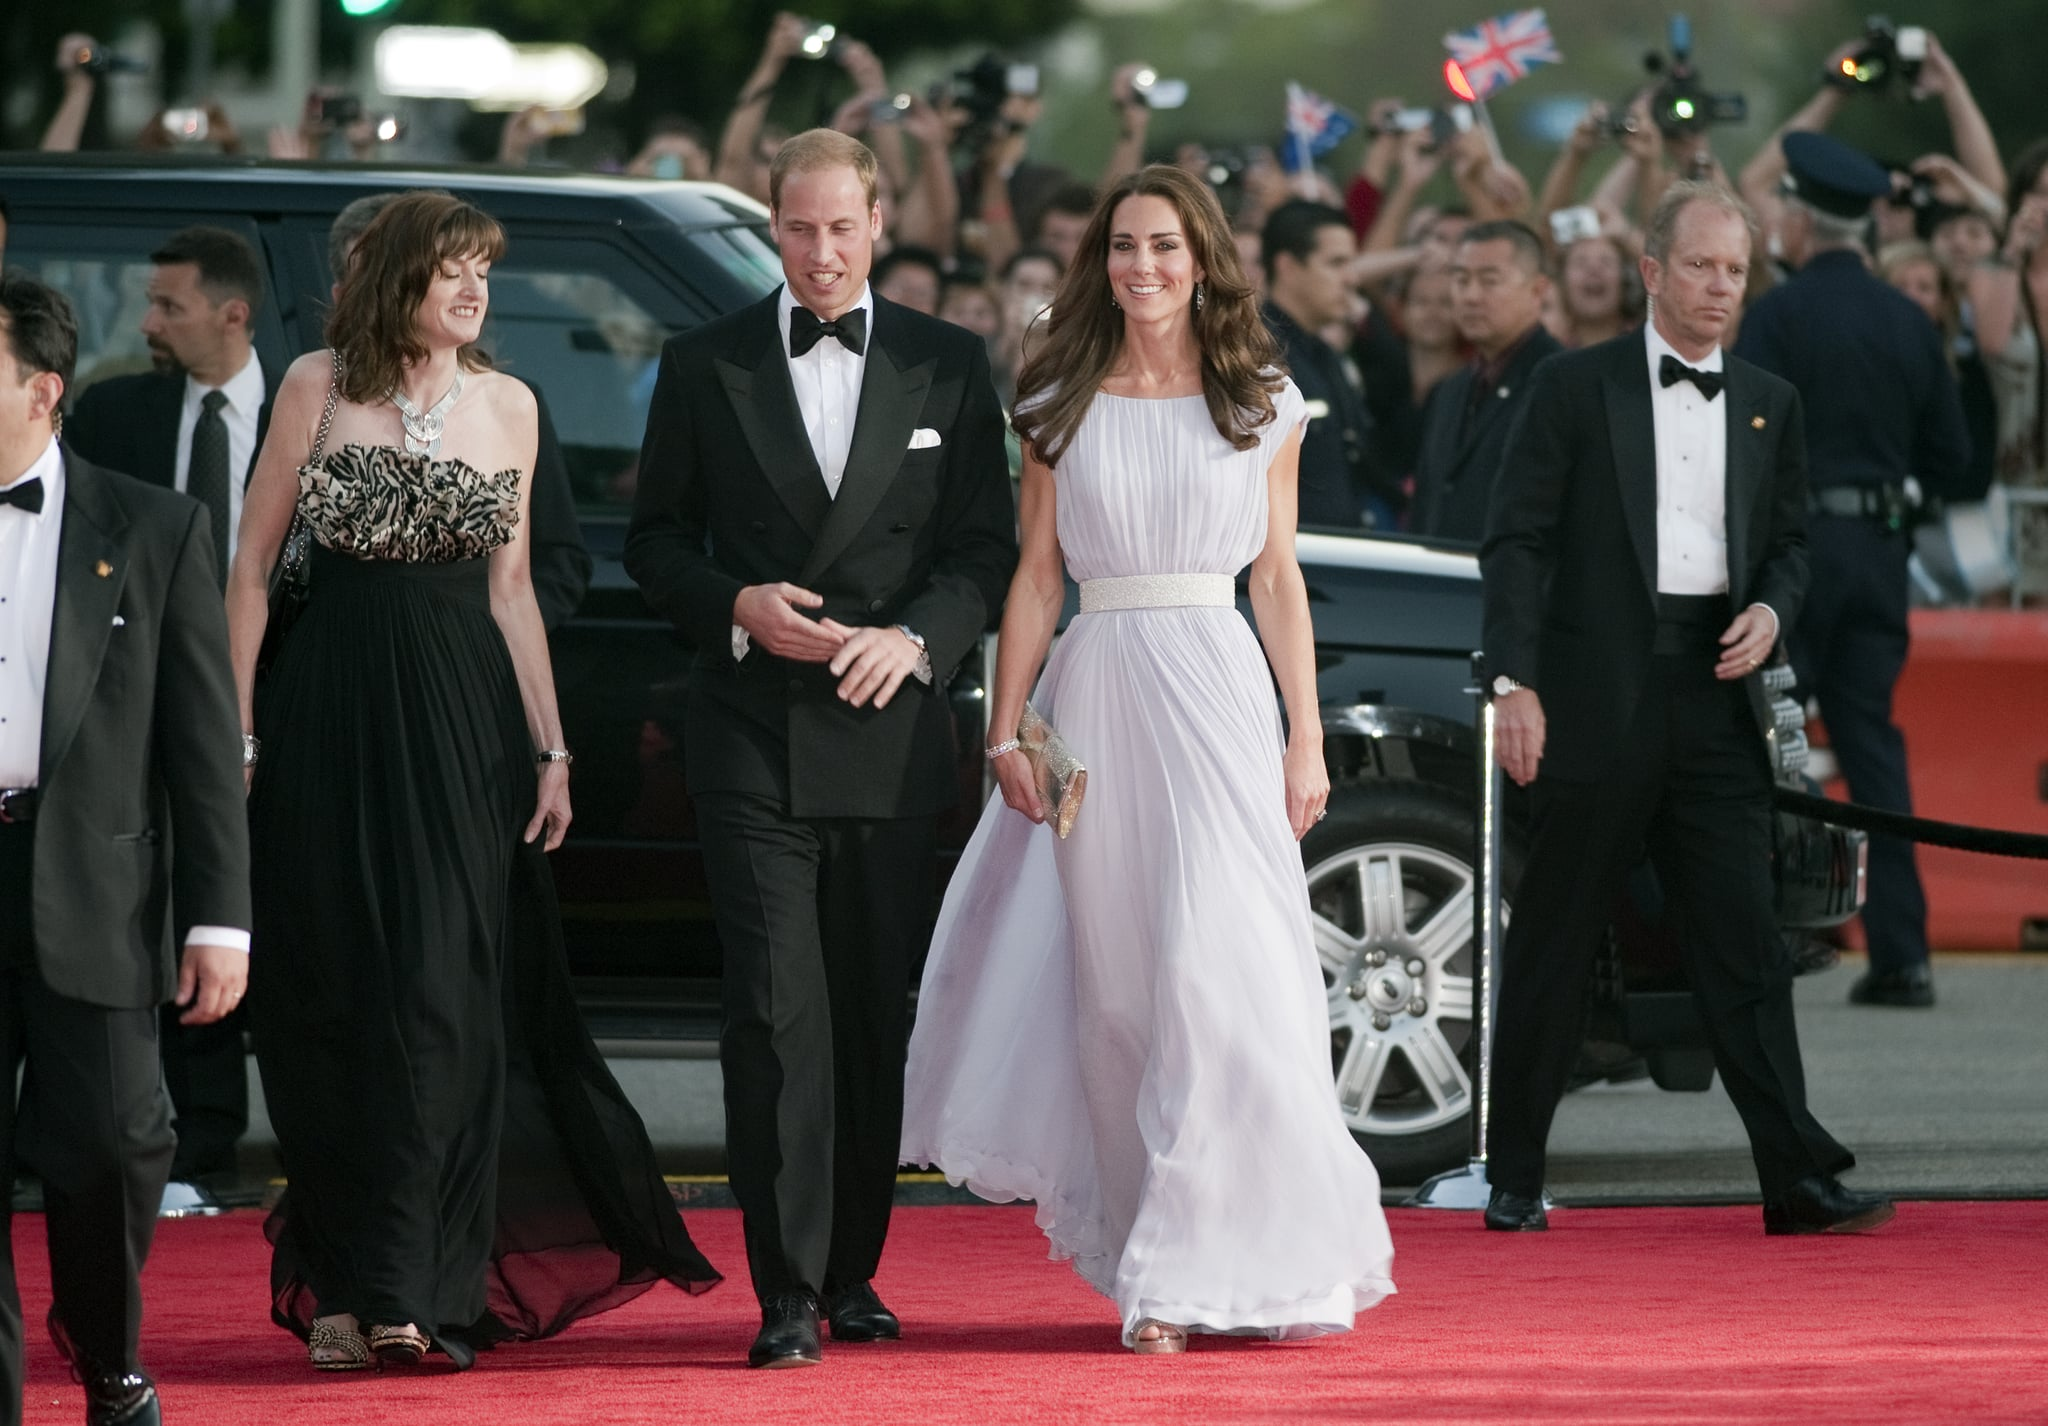 Prince William and Kate Middleton got dressed up to attend a July 2011 BAFTA event during their tour of Los Angeles.